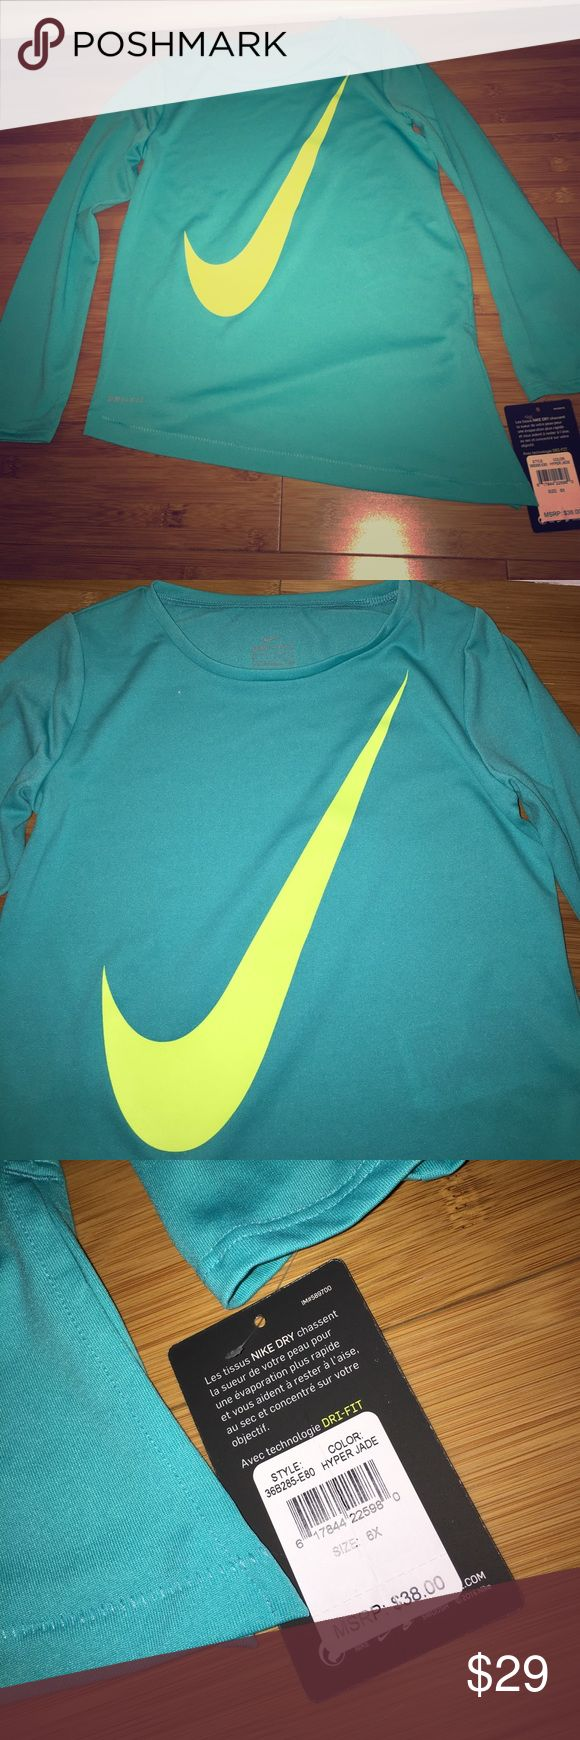 NWT GIRLS SIZE 6X NIKE TOP NWT GIRLS SIZE 6X NIKE TOP TEAL COLOR. TAGS ATTACHED NEVER WORN. BUY 2, SAVE 10% BUY 3, SAVE 15%. Nike Shirts & Tops Tees - Long Sleeve